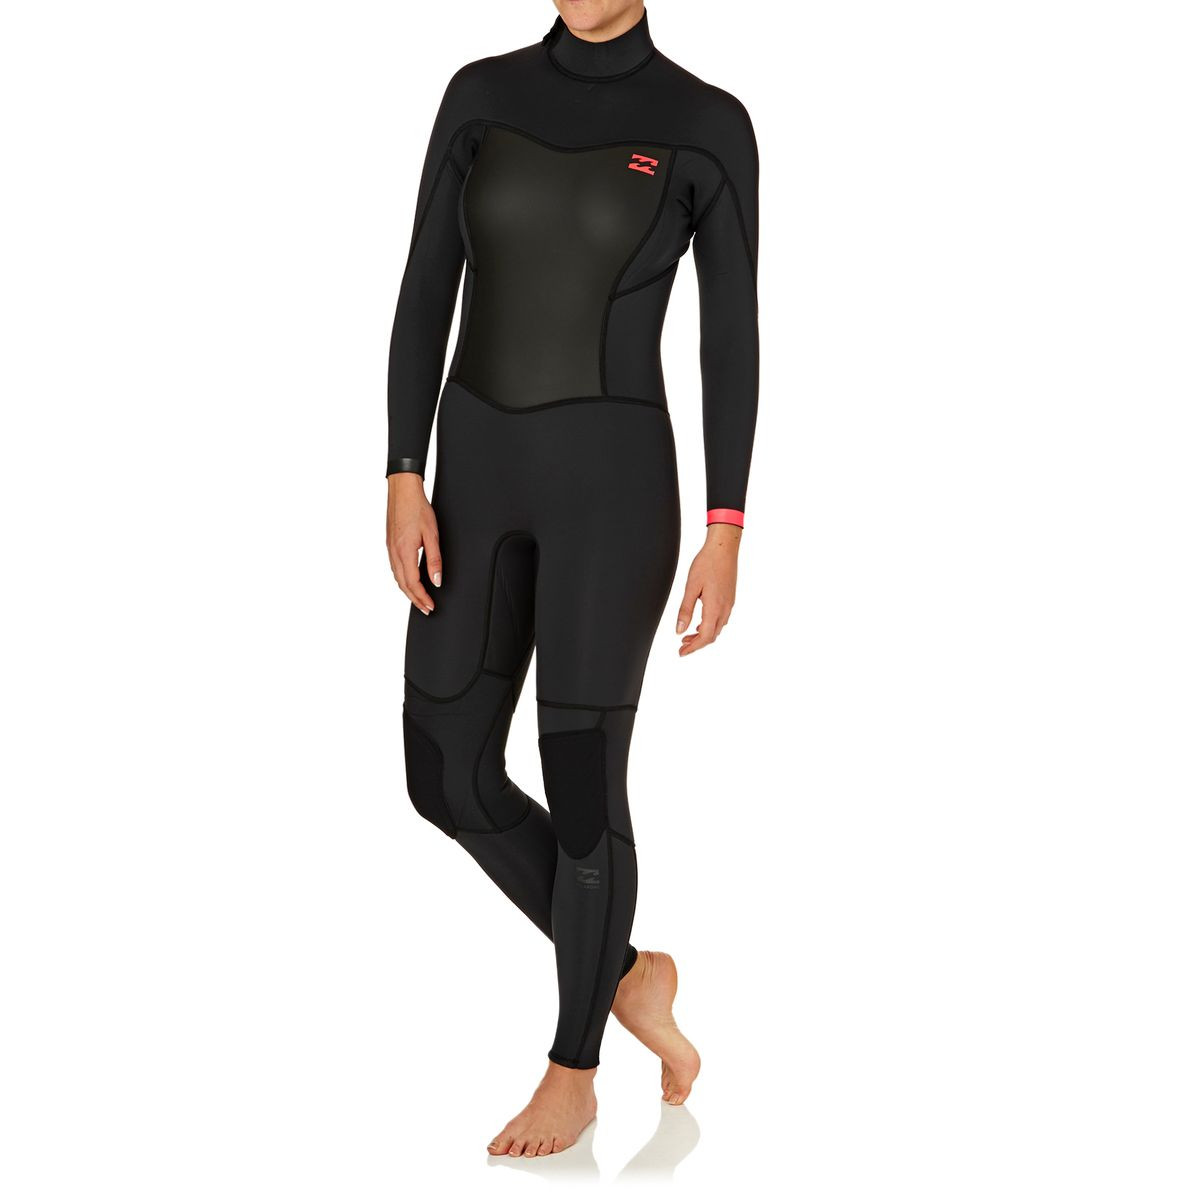 Billabong Womens Synergy 3/2mm 2017 Back Zip Wetsuit - Black Sands